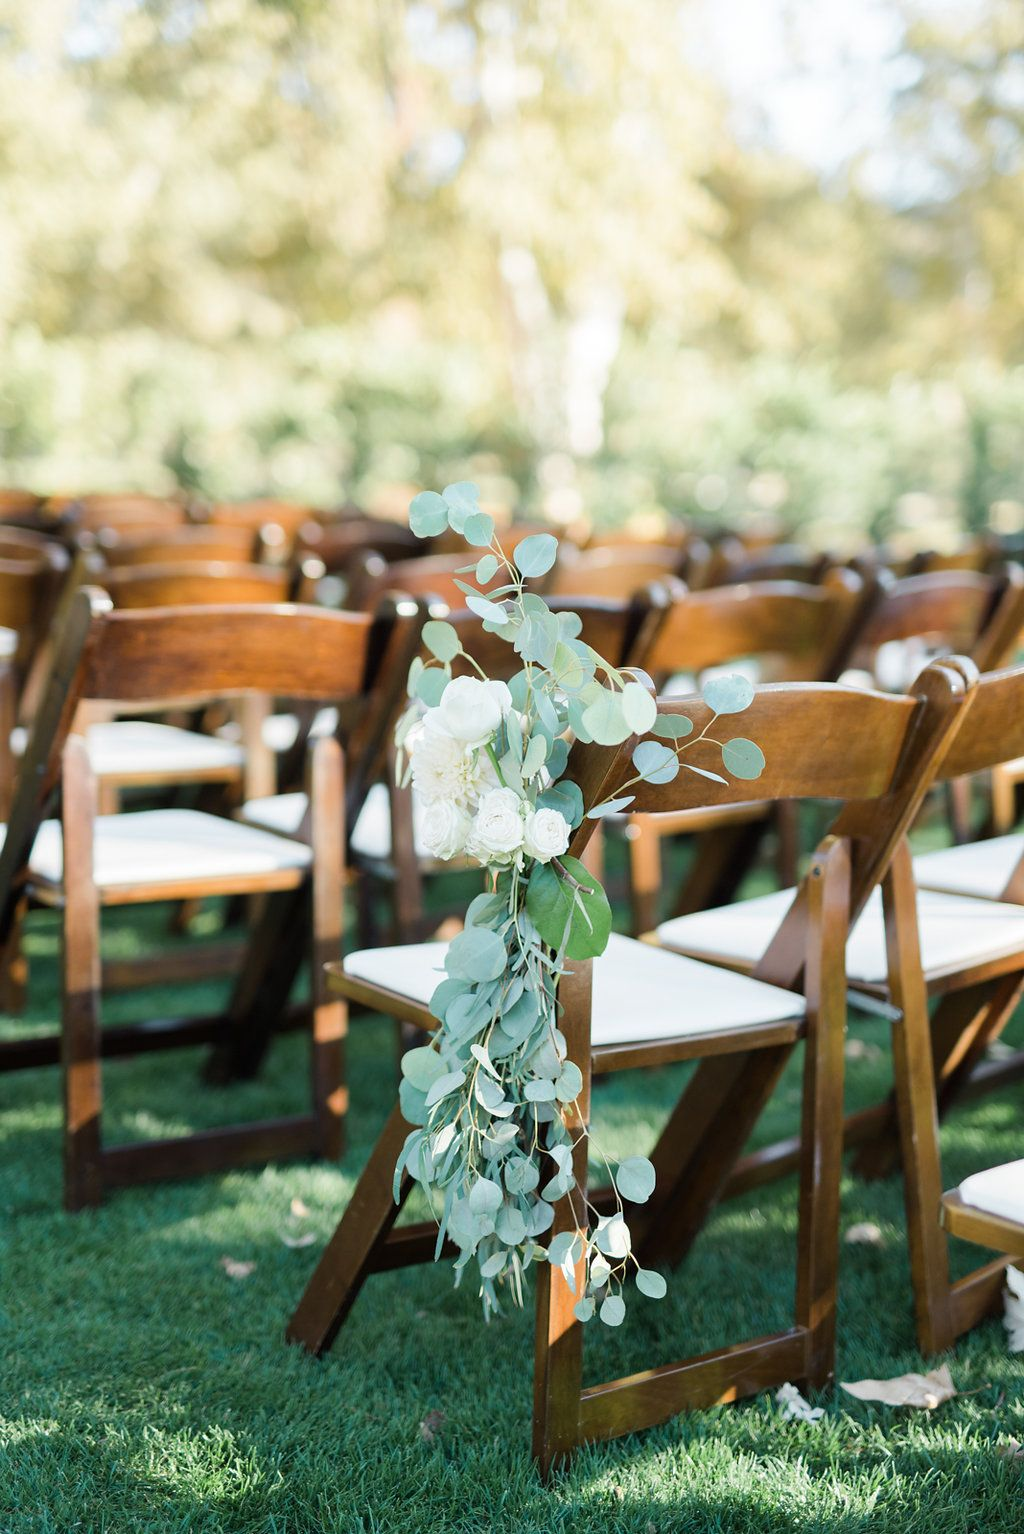 A Rustic Wedding at Triunfo Creek Vineyards  Feathered Arrow Wedding Planning is part of Wedding aisle decorations - If you love a good meetcute story, then you have to see how this couple met before their dreamy rustic vineyard wedding at Triunfo Creek Vineyards!